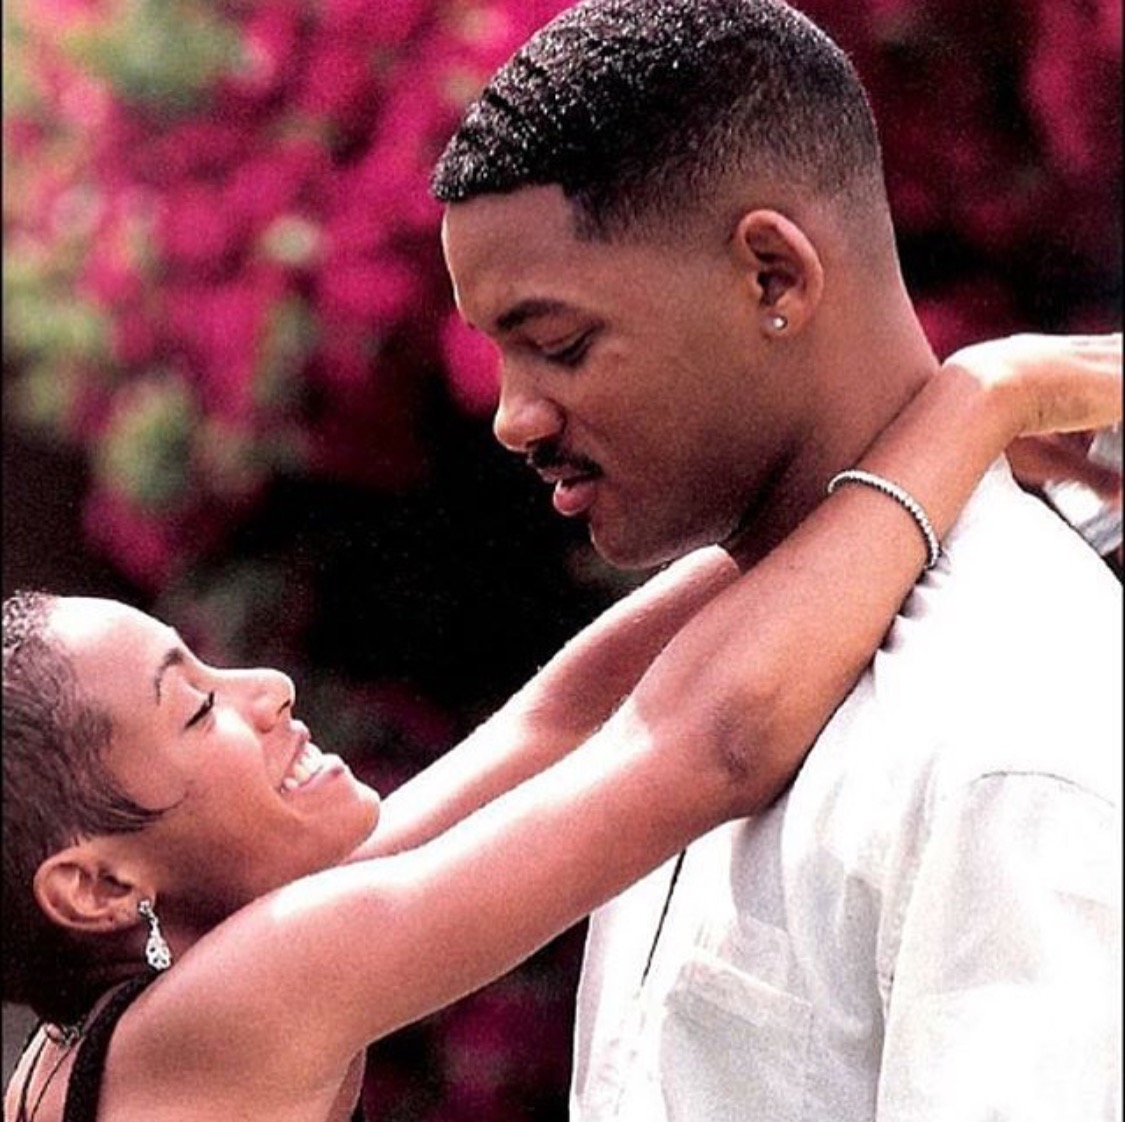 Everything you've ever heard about Jada and Will Smith's marriage is a lie